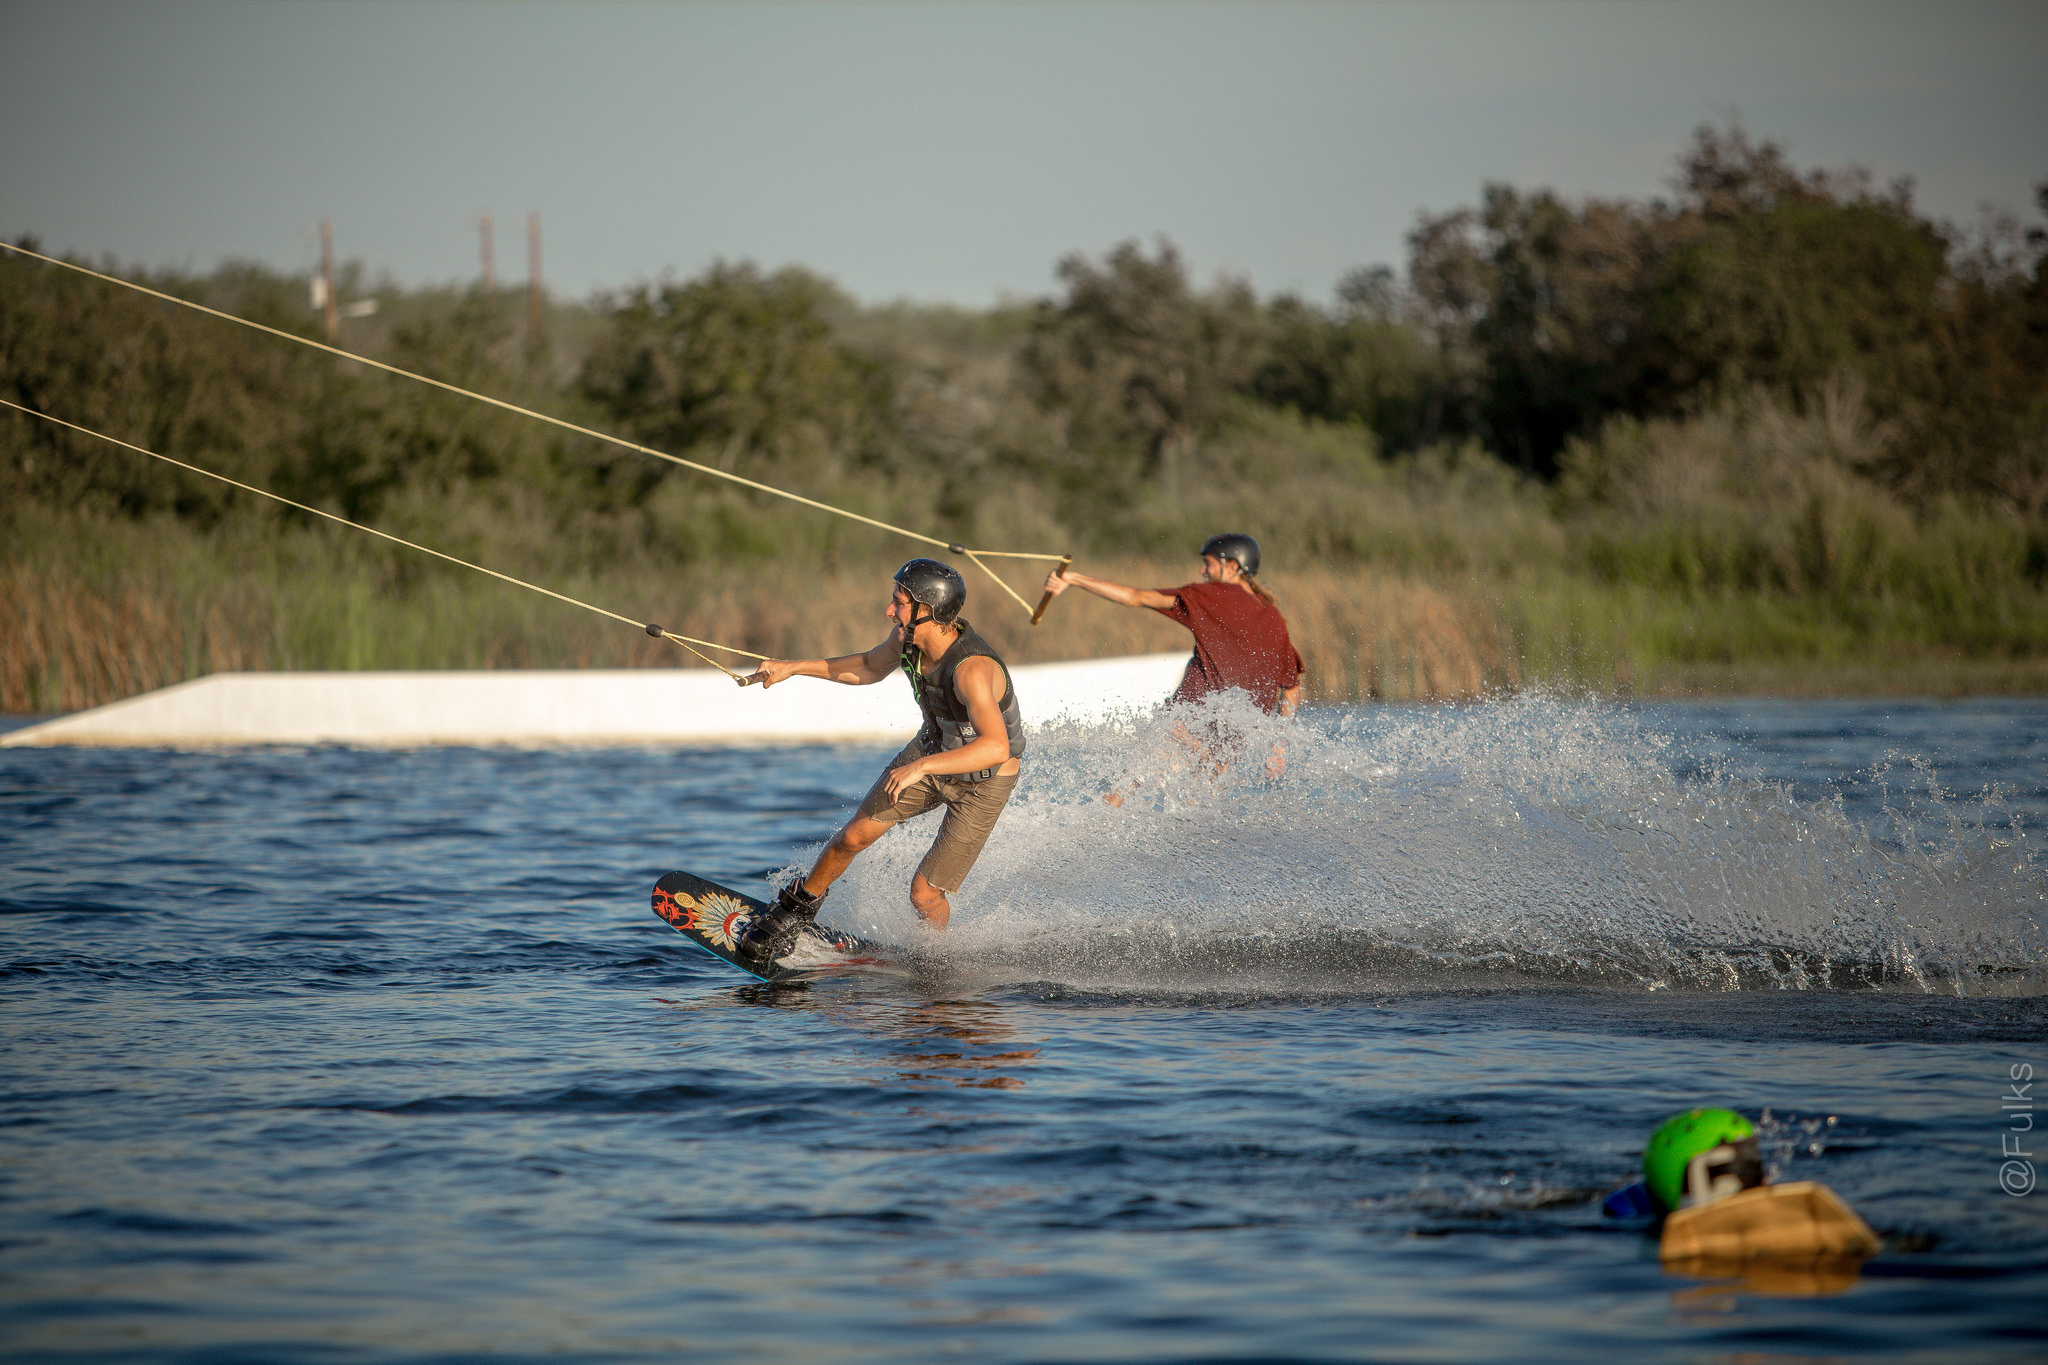 wakeboard quest atx your local wakeboard park austin tx